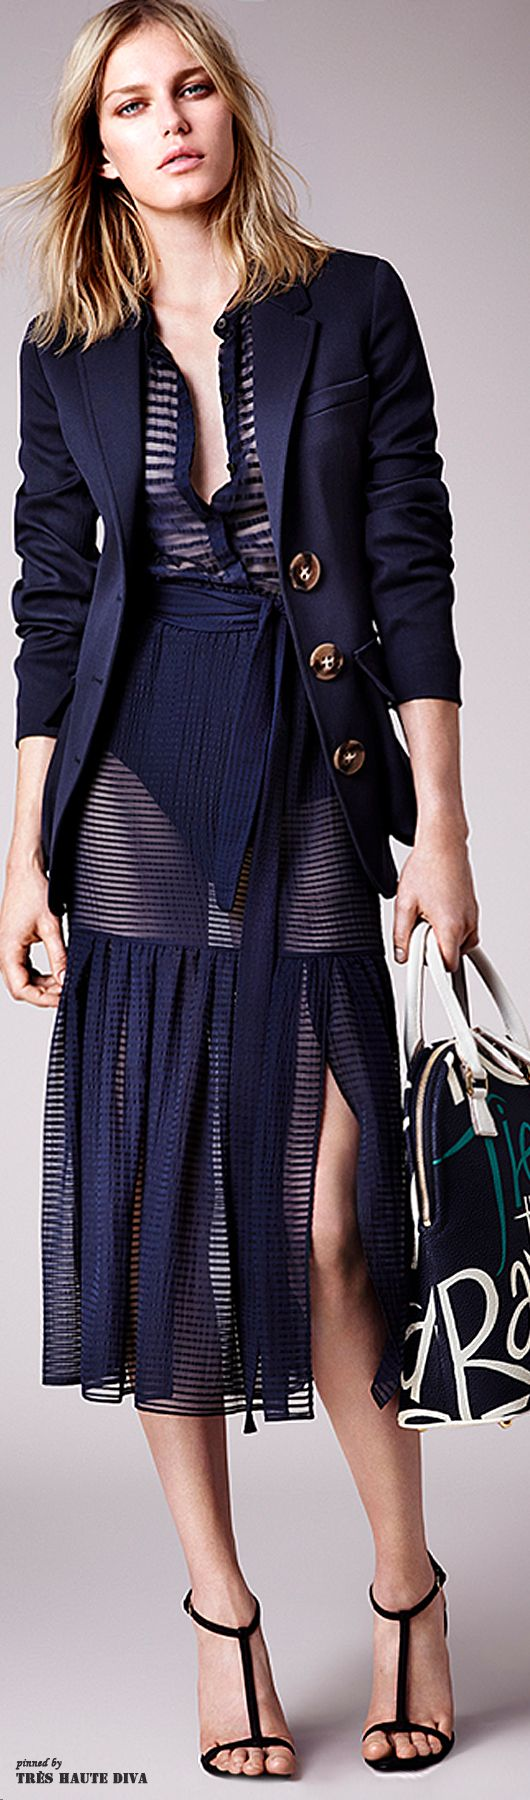 Burberry Prorsum Resort 2015 • тнє LOOK BOOK • ✿ιиѕριяαтισи❀ • Babz ✿ #abbigliamento